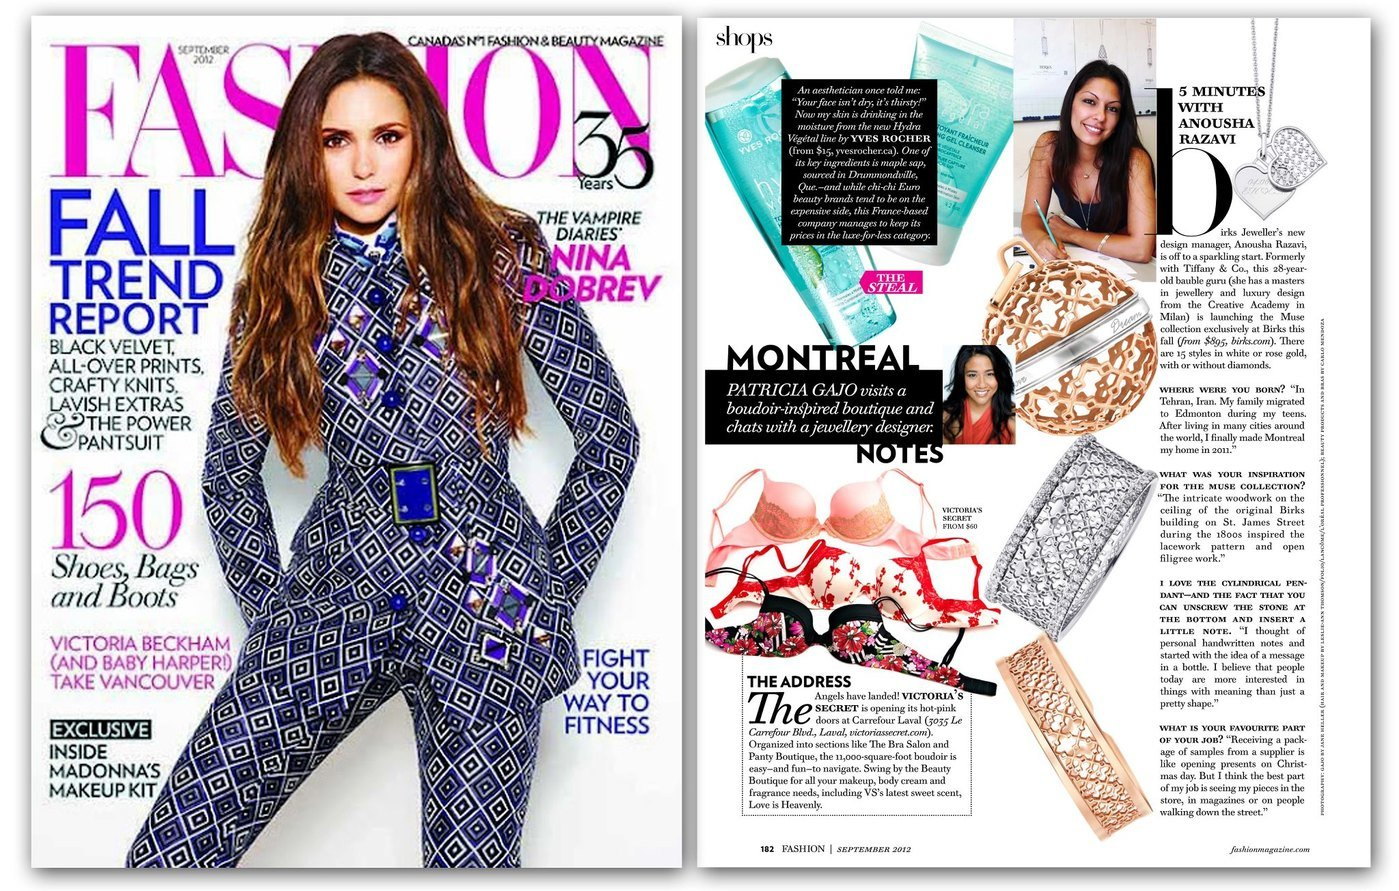 Anousha Razavi Article In Fashion Magazine Sept 2012 By Anousha Razavi At Coroflot Com